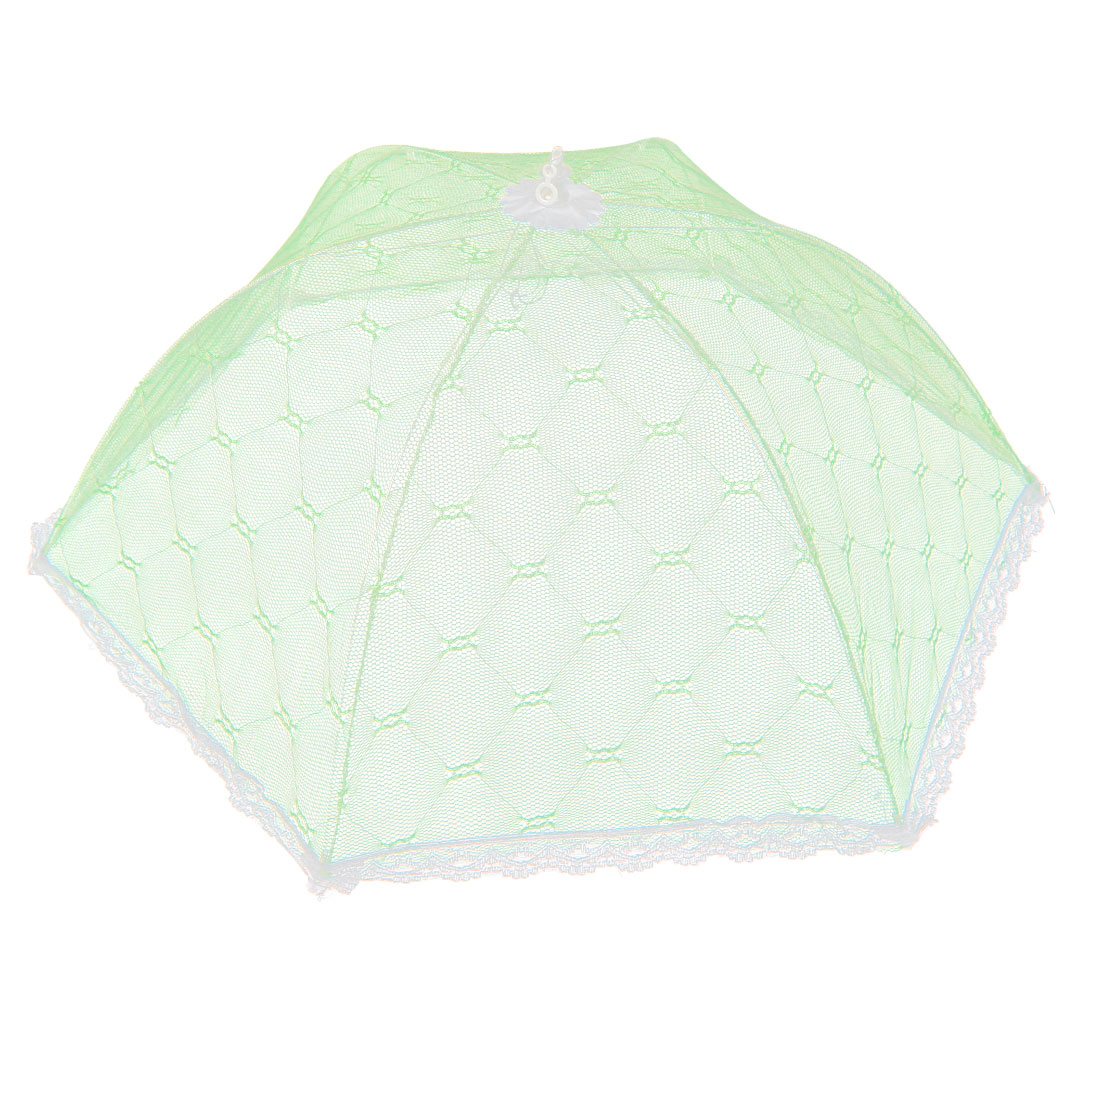 Household Kitchen Picnic Party Metal Frame Nylon Netty Umbrella Shaped Foldable Food Cover Light Green